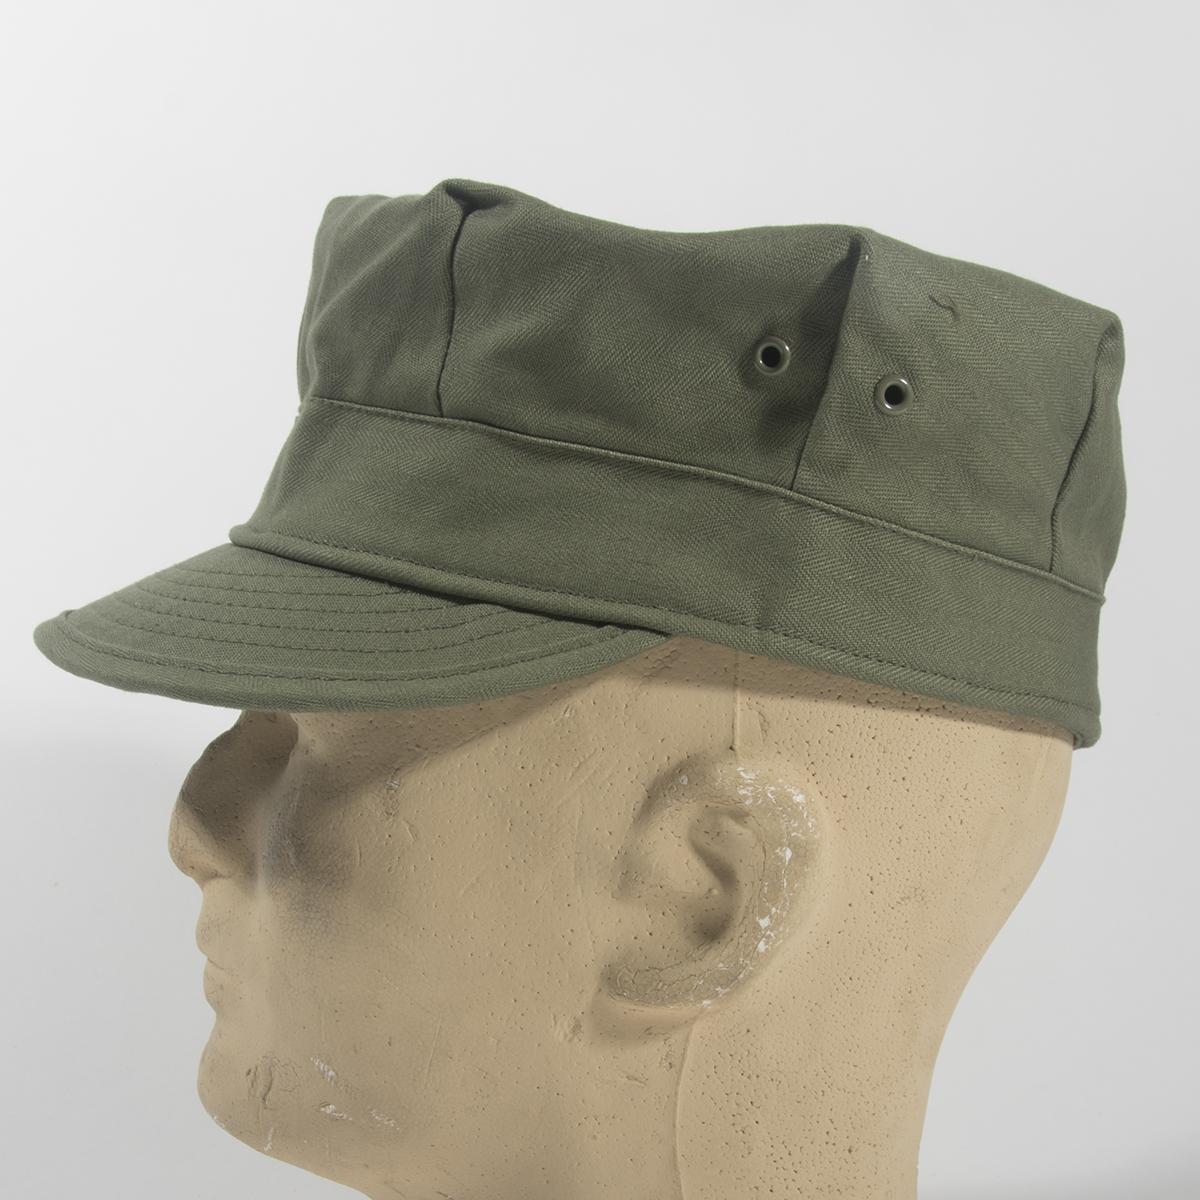 First issue fatigue and field cap made in sage green HBT. Patterned from  original bb2b62625d58